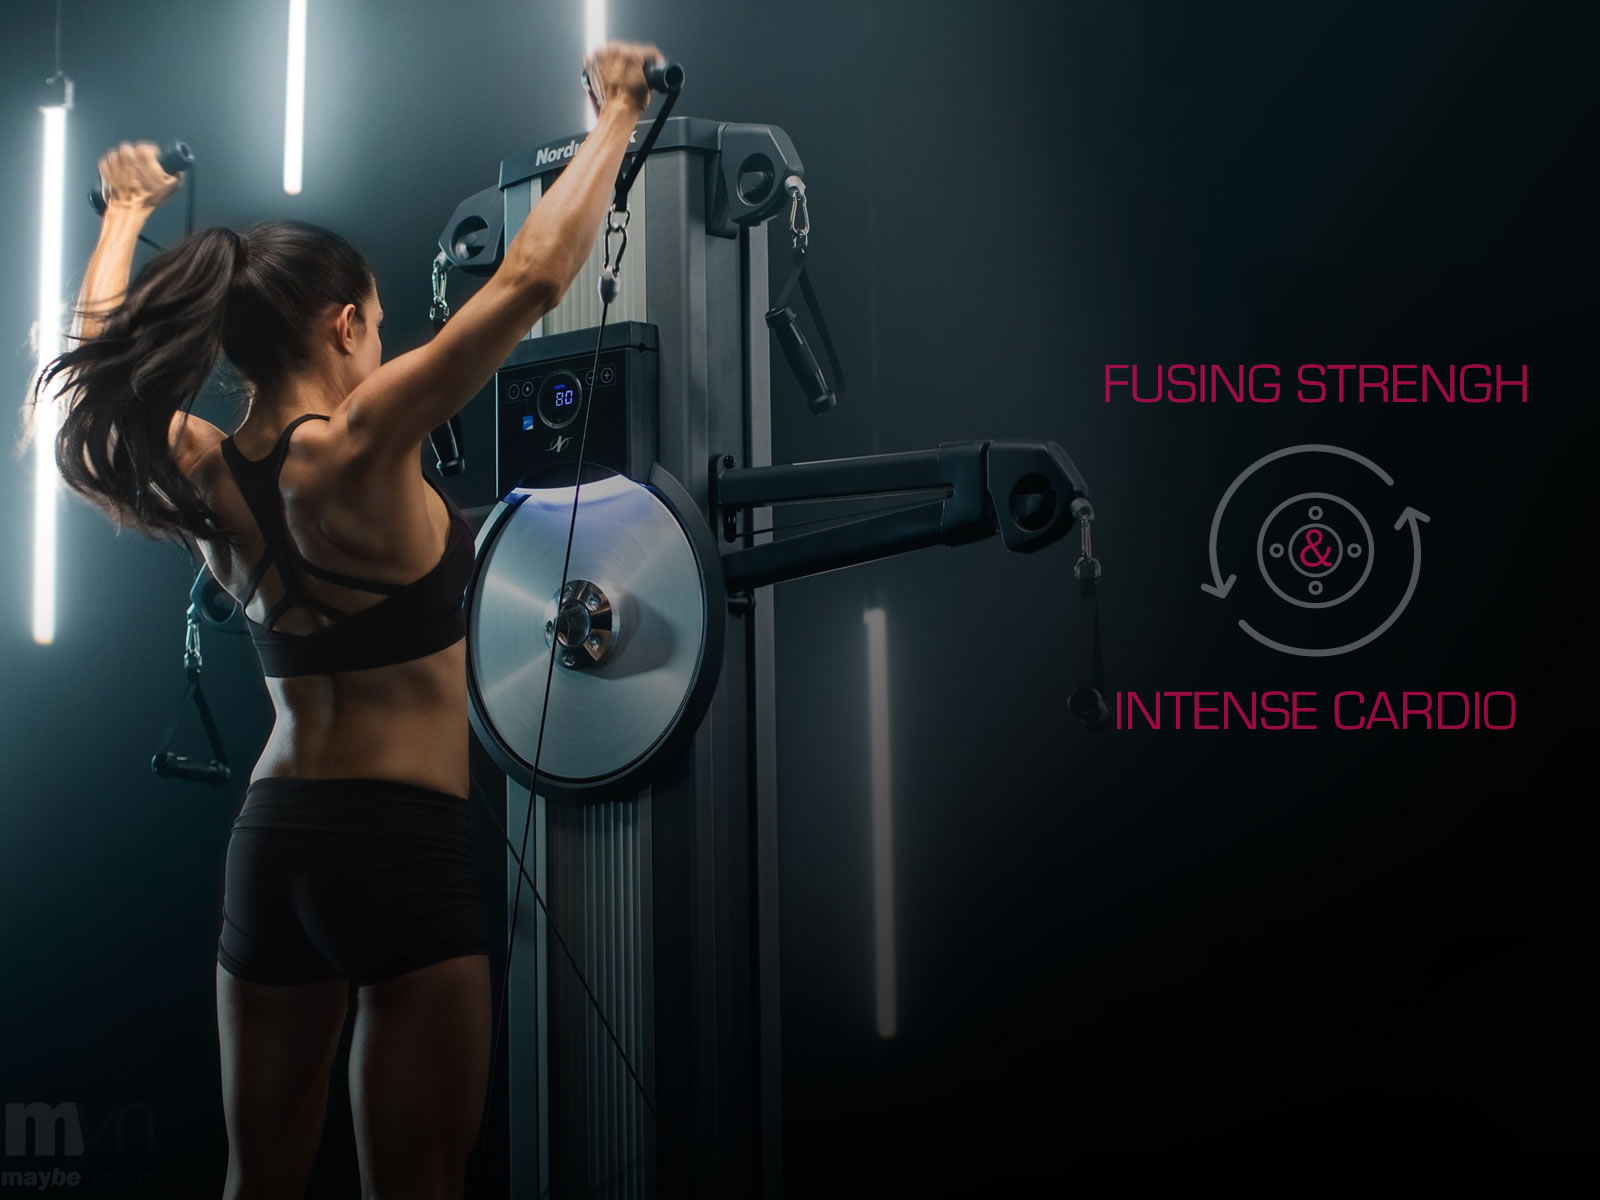 FUSING STRENGTH WITH INTENSE CARDIO WORK-OUTS IN ONE PIECE OF EQUIPMENT